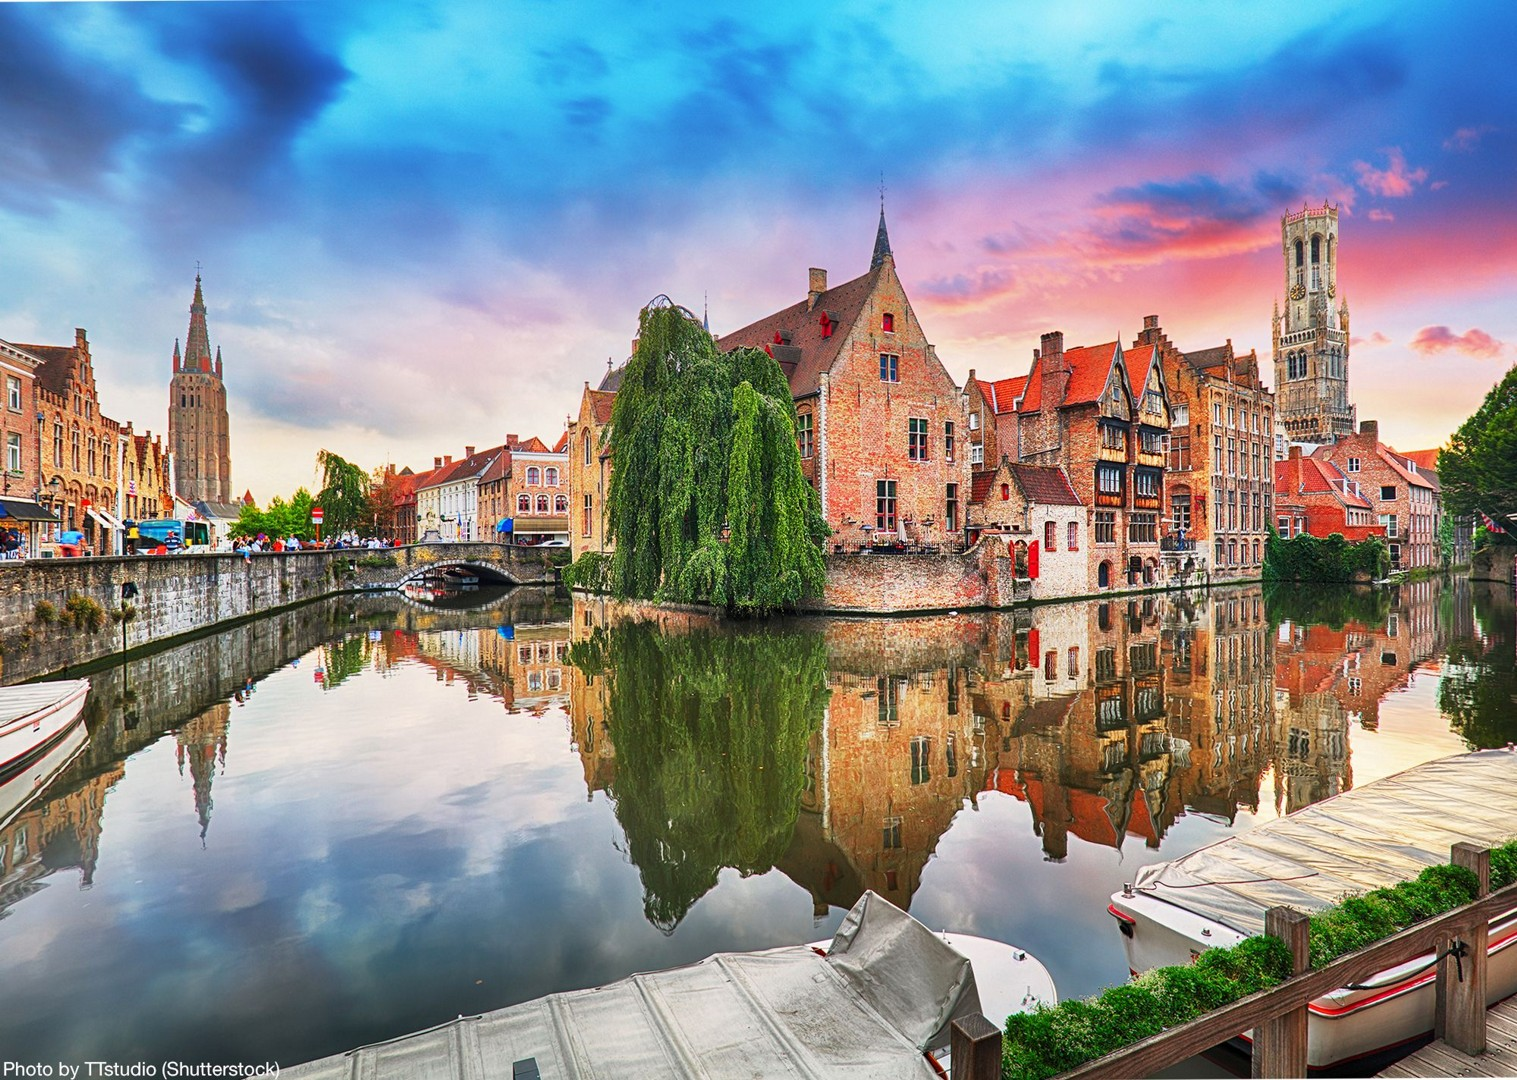 belfry-of-bruges-belgium-to-amsterdam-cycling-boat-tour.jpg - Holland and Belgium - Bruges to Amsterdam - Bike and Barge Holiday - Leisure Cycling